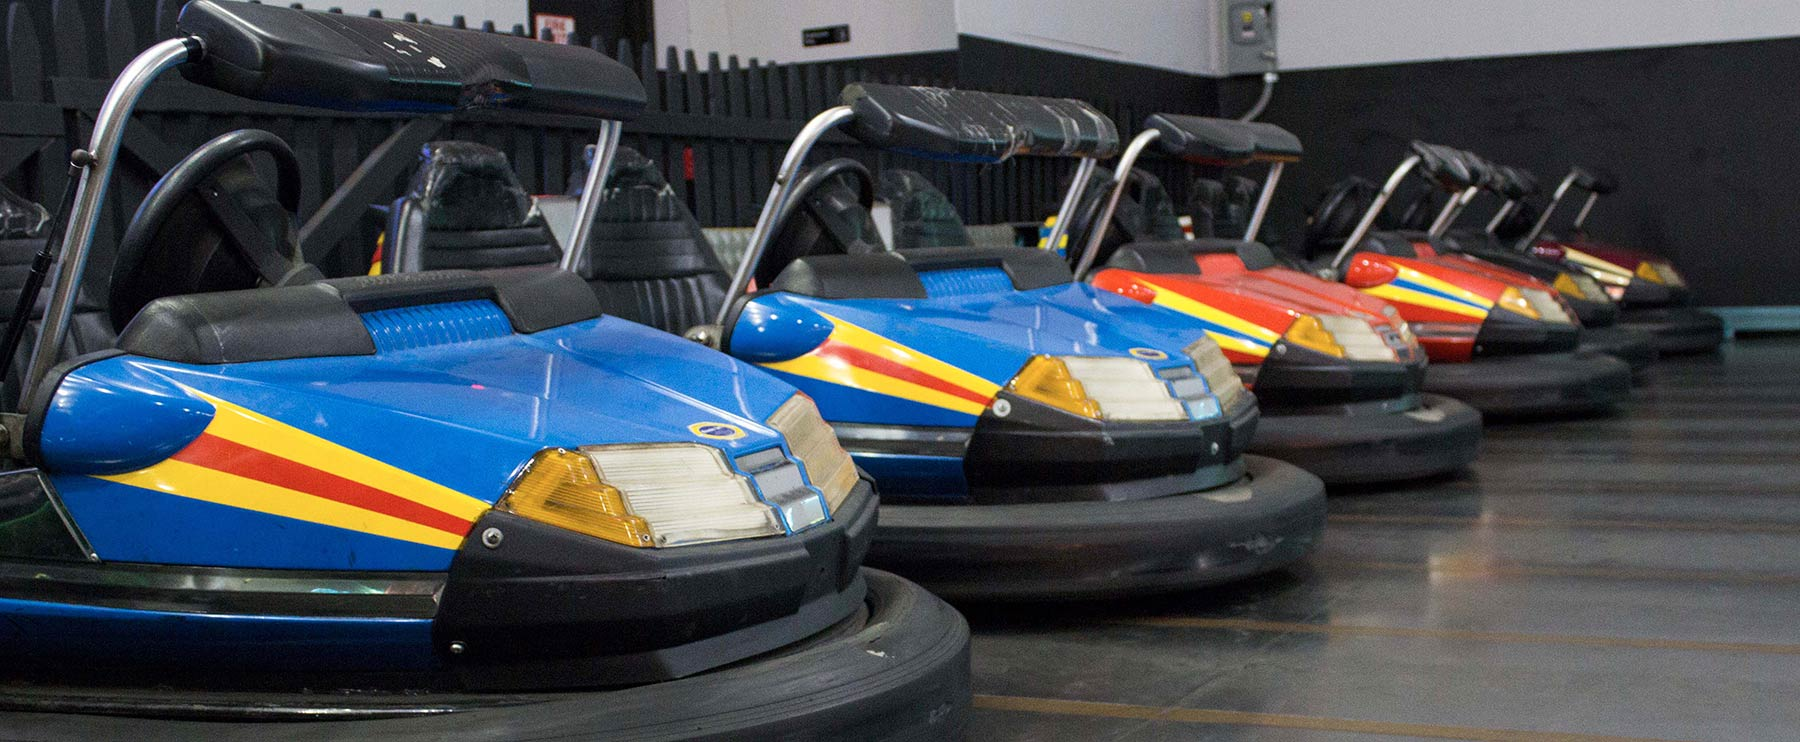 Corporate Events - Bumper Cars